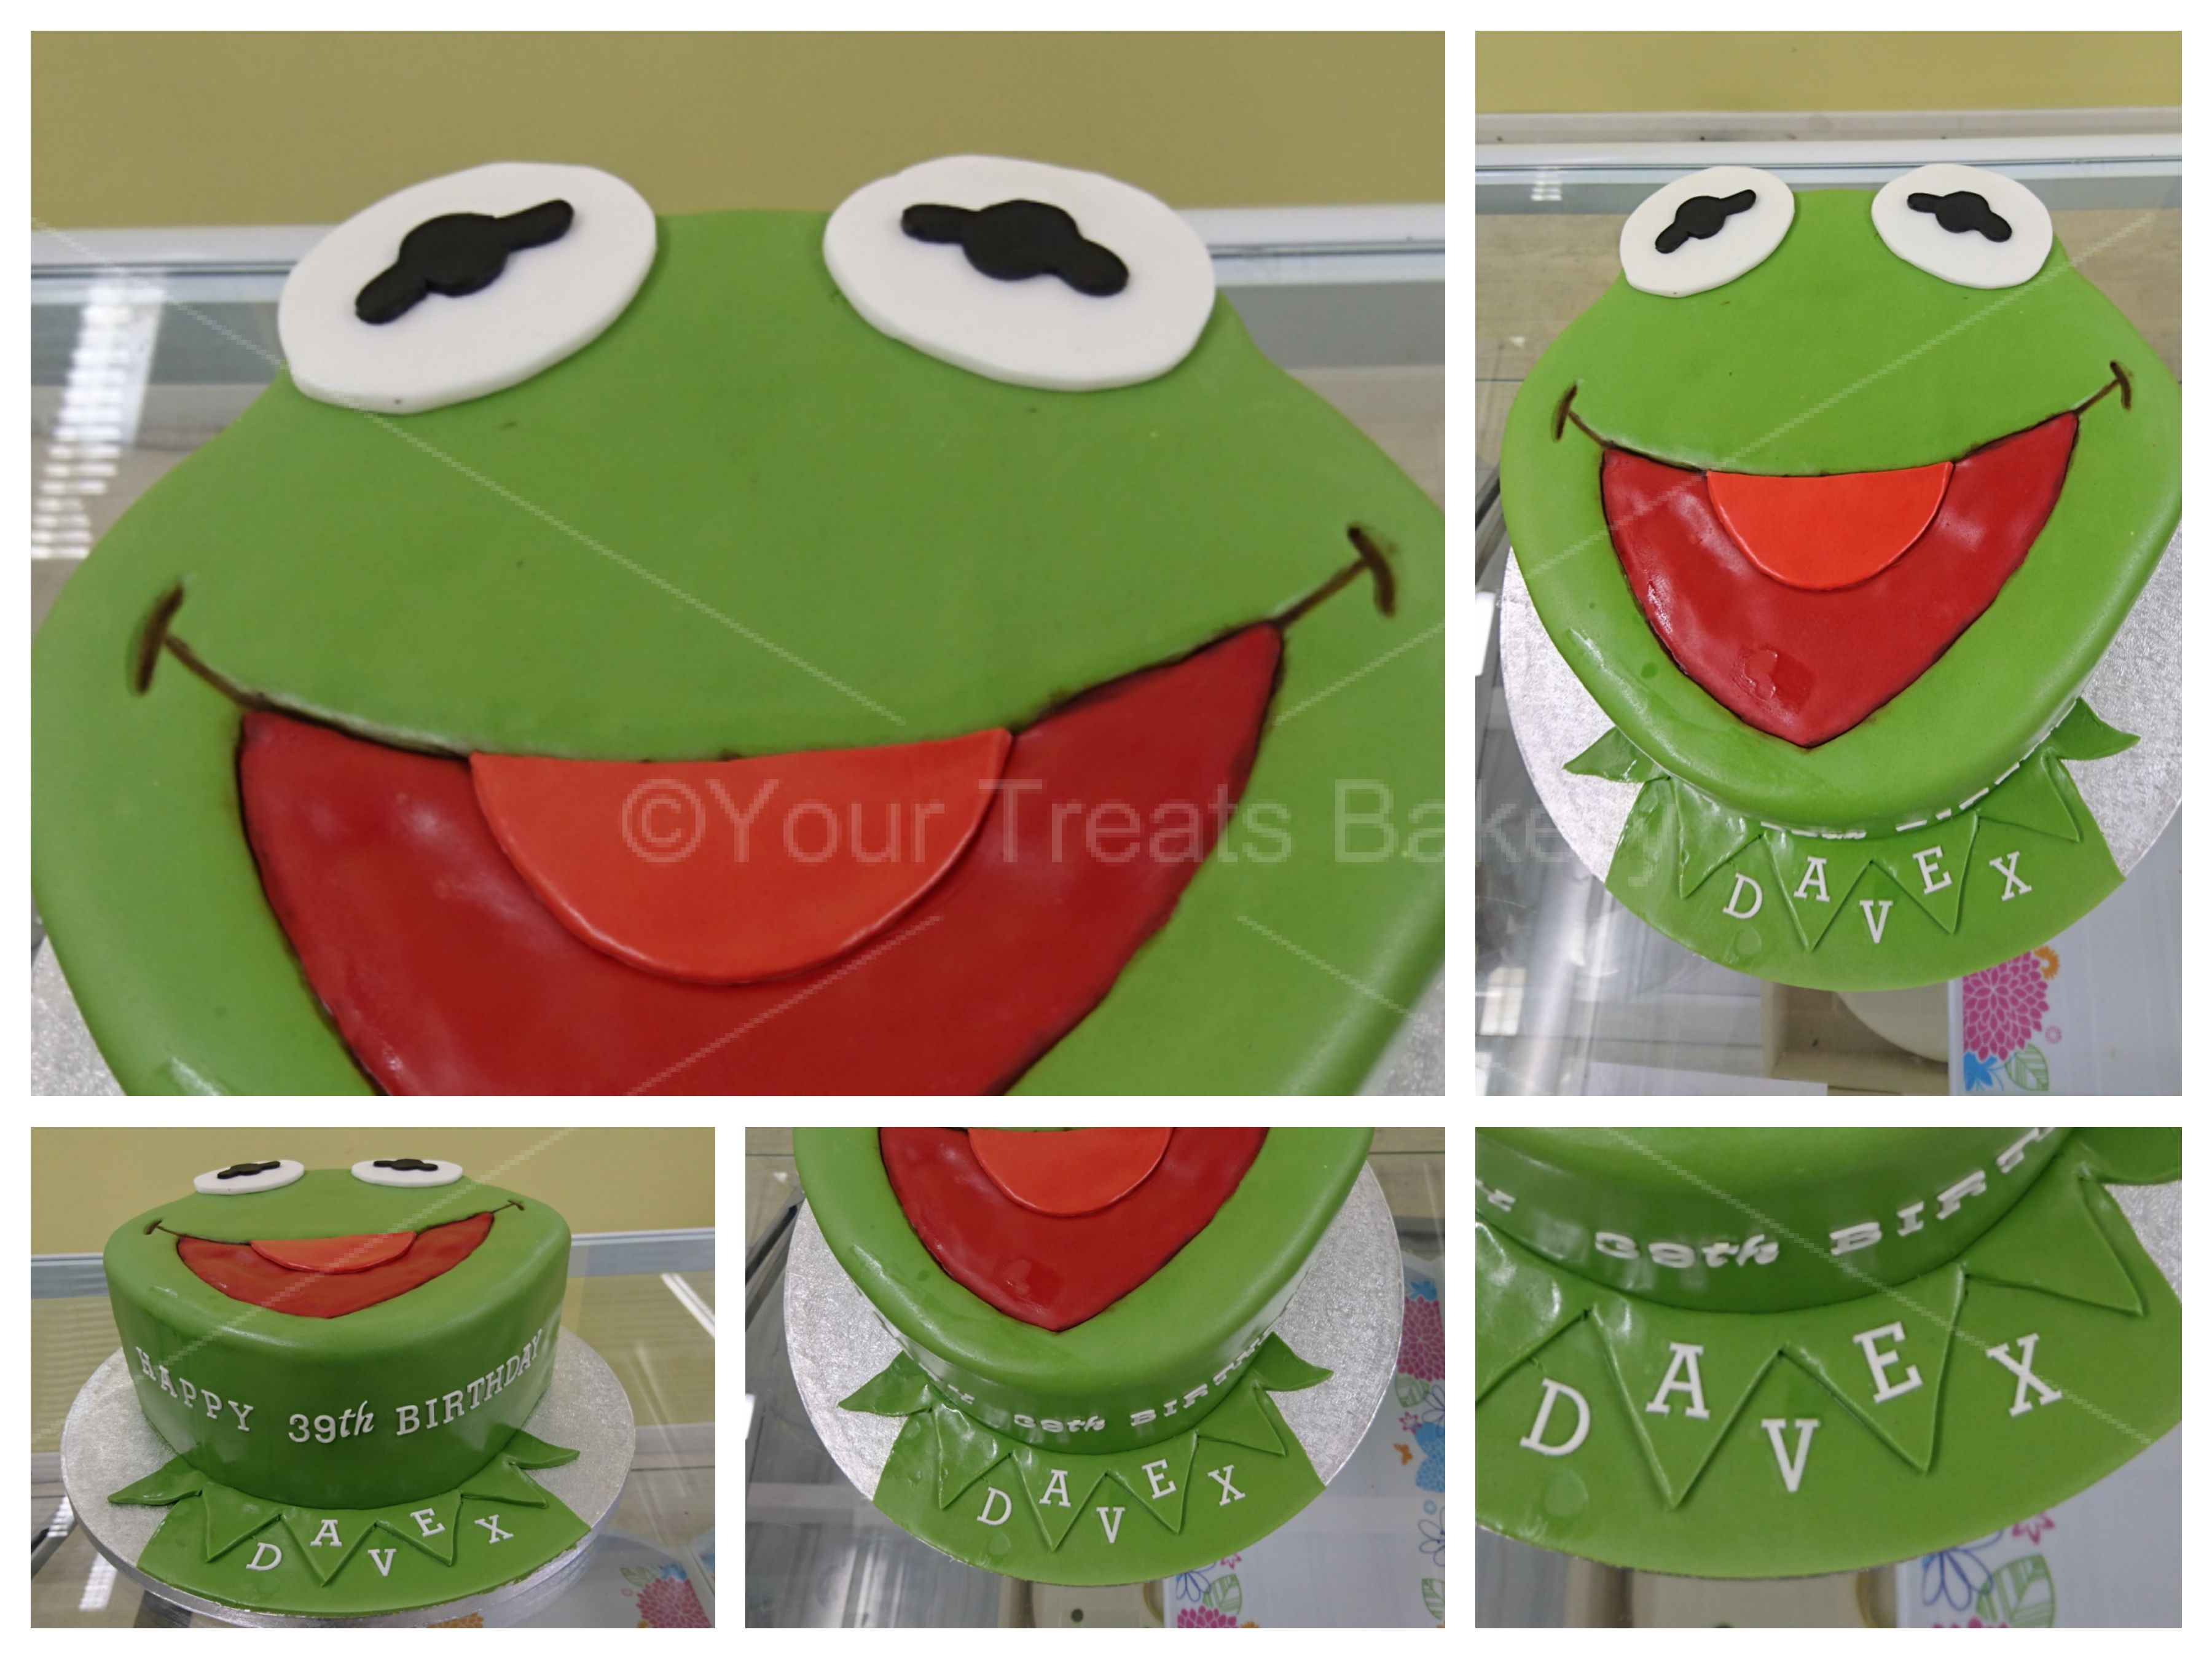 Astounding Kermit The Frog Cake Your Treats Bakery Funny Birthday Cards Online Sheoxdamsfinfo